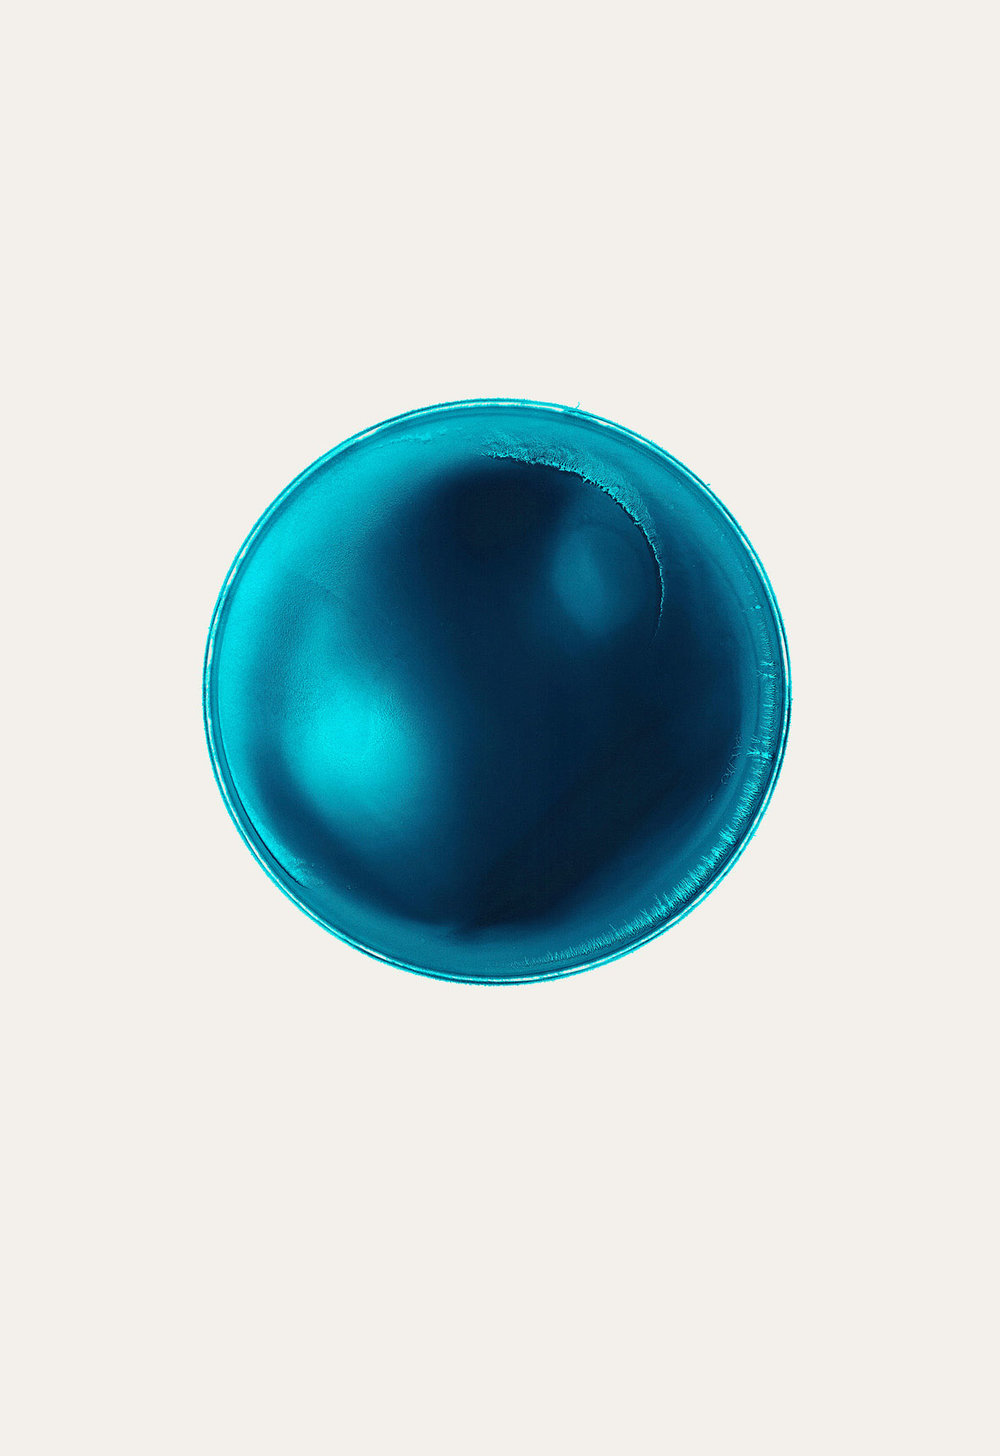 THIS IS NOW – turquoise (VI)  2010  pigment dispersal on 100% cotton fibre  101.0 x 73.7 cm, Ø 36.6 cm